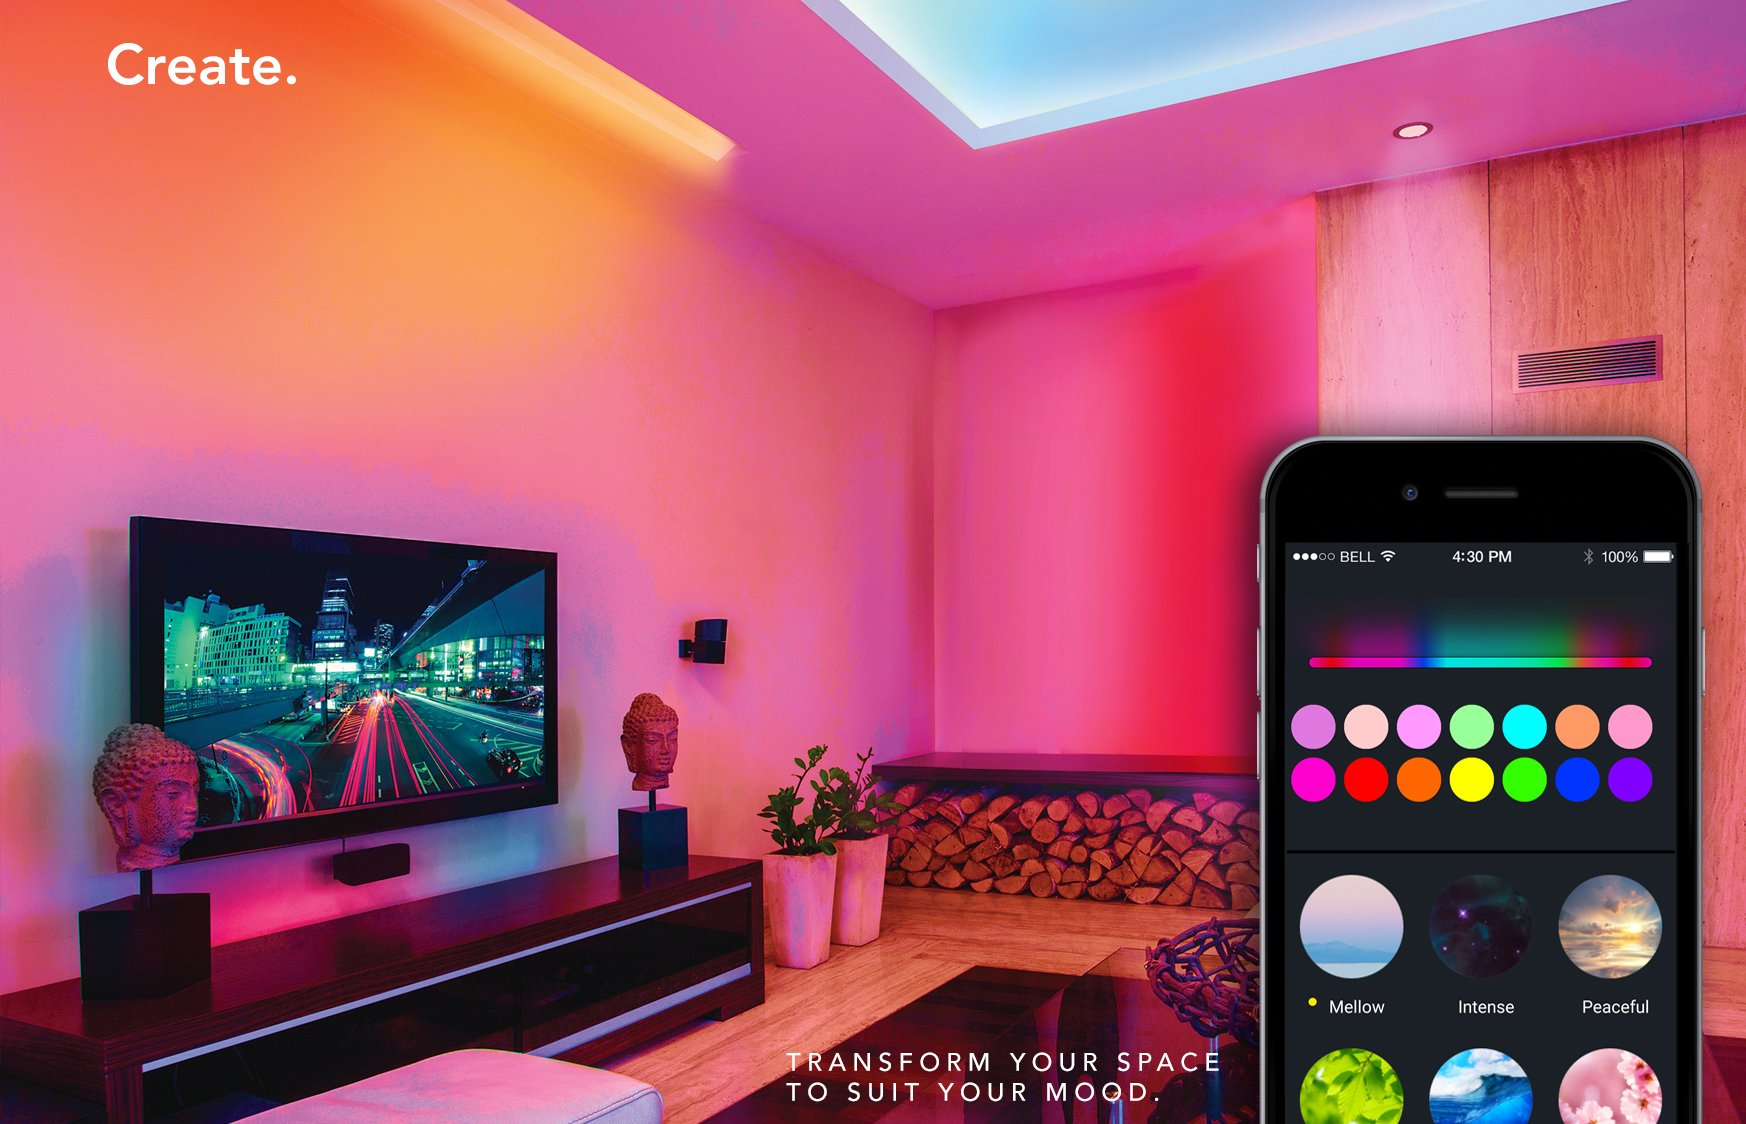 LIFX Z (Starter Kit) Wi-Fi Smart LED Light Strip (Base + 2 meters of strip), Adjustable, Multicolor, Dimmable, No Hub Required, Works with Alexa and Google Assistant by LIFX (Image #3)